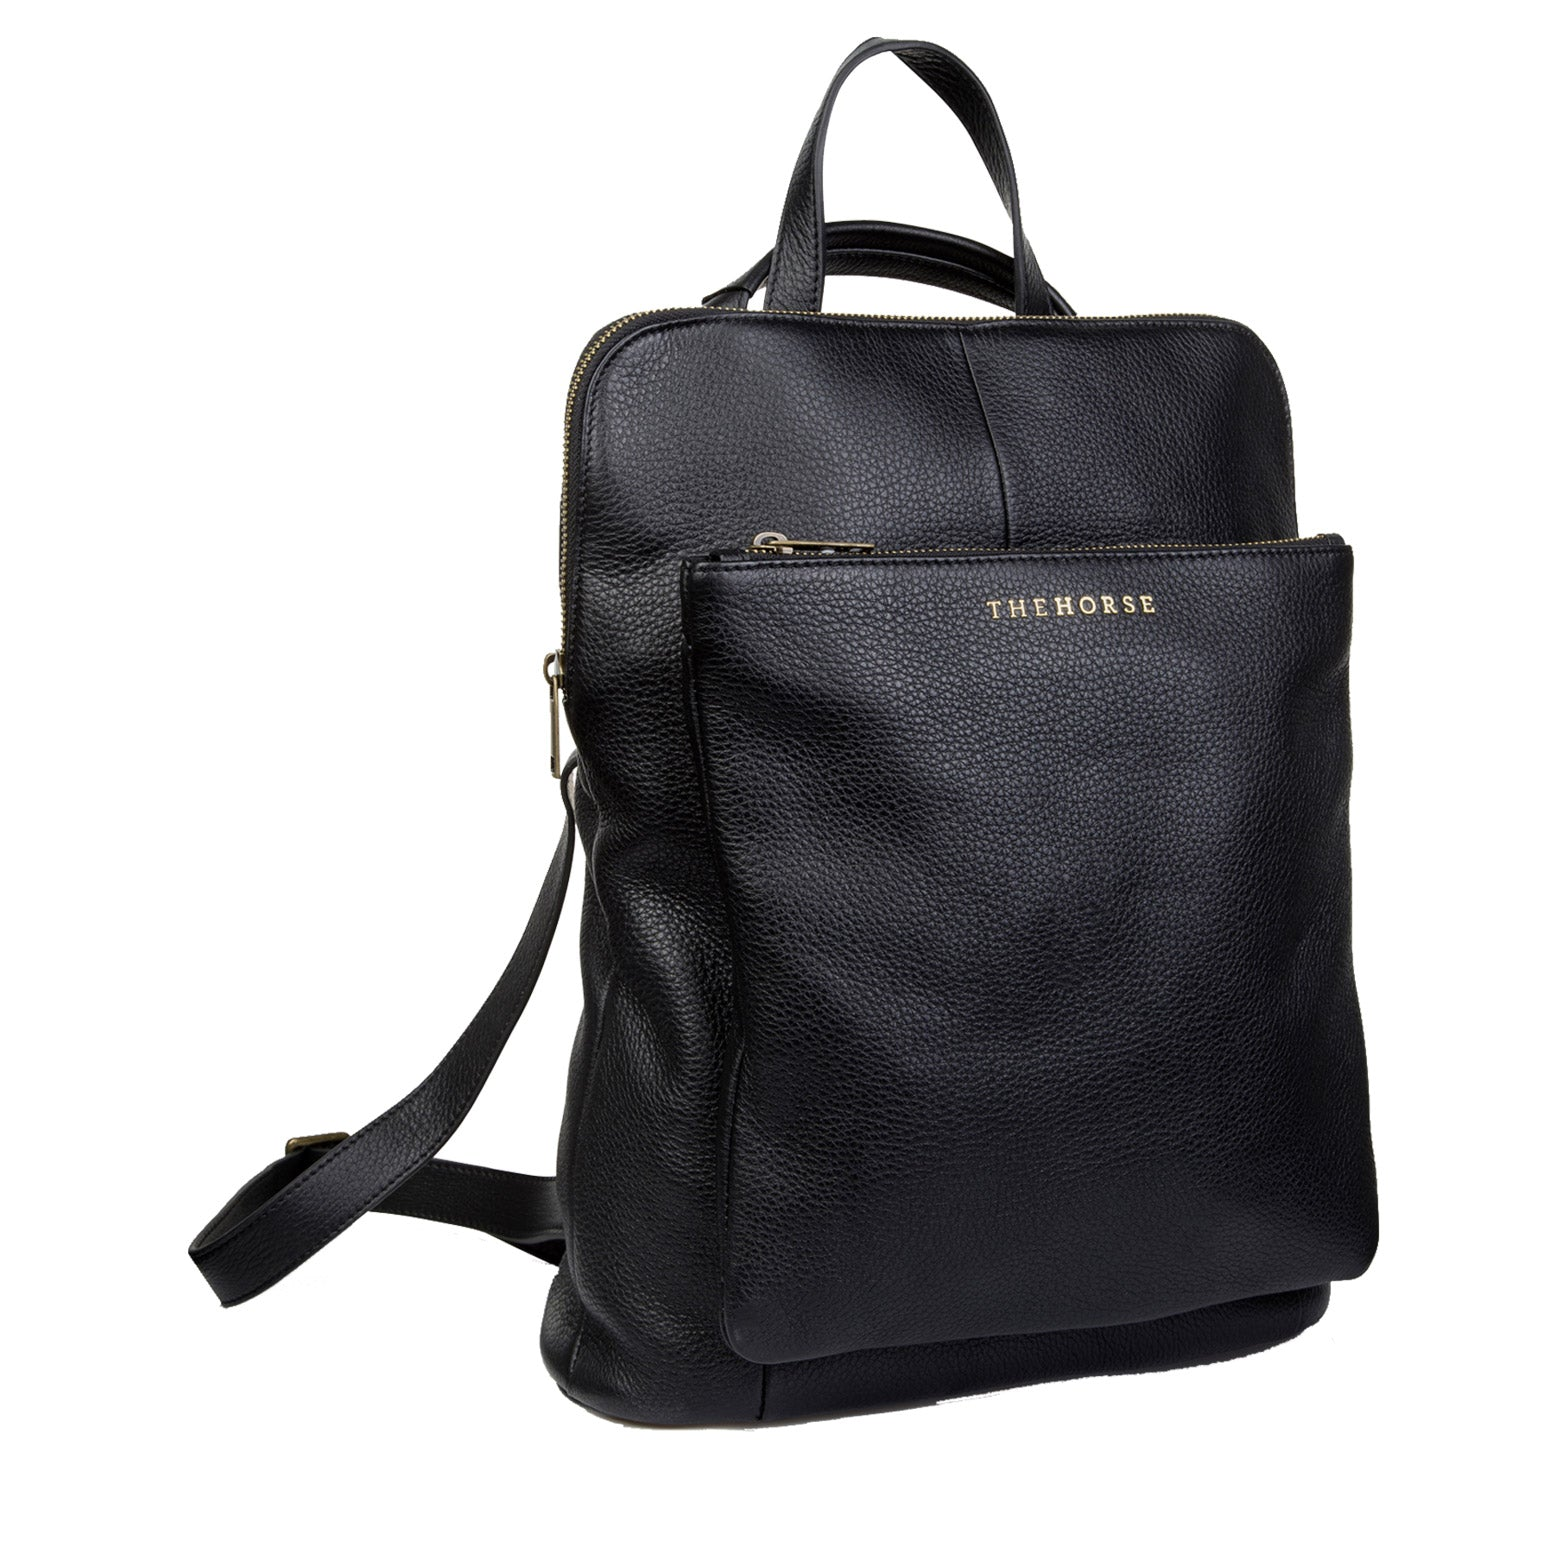 Leather Backpack - Black - The Horse - Paper Plane Exclusive - NZ